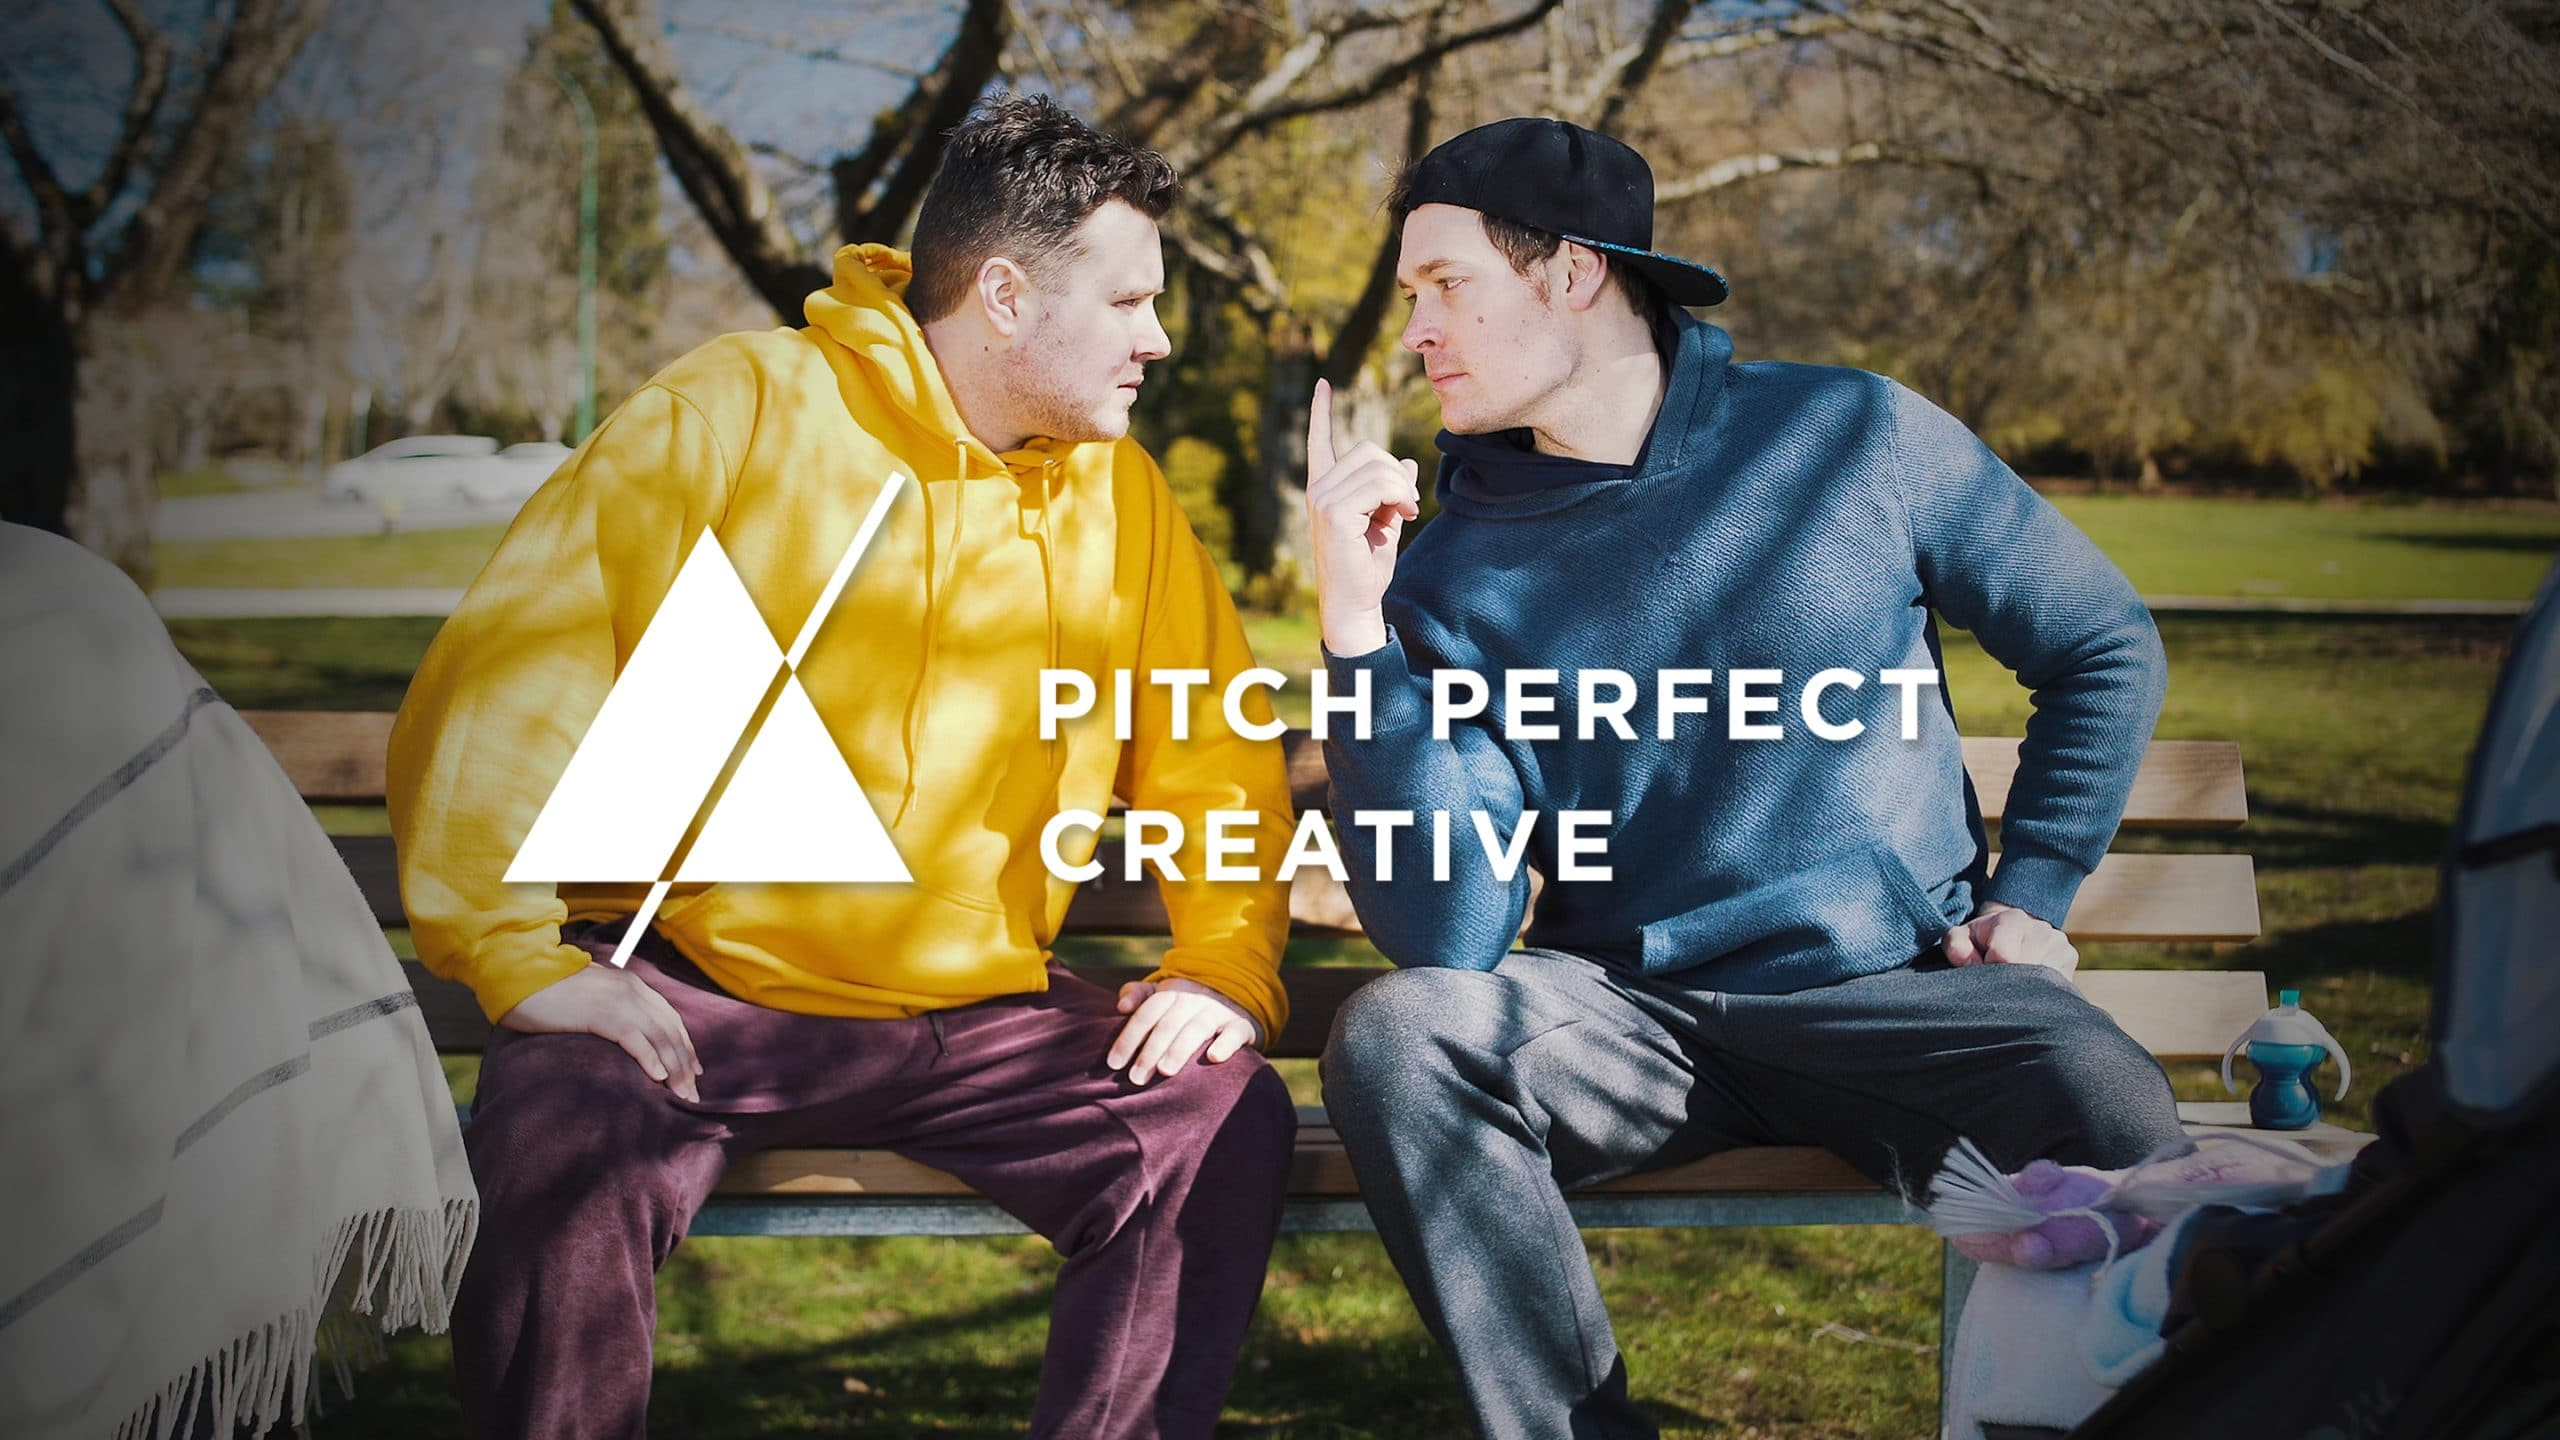 Two Dads sitting on a park bench. Logo says Pitch Perfect Creative